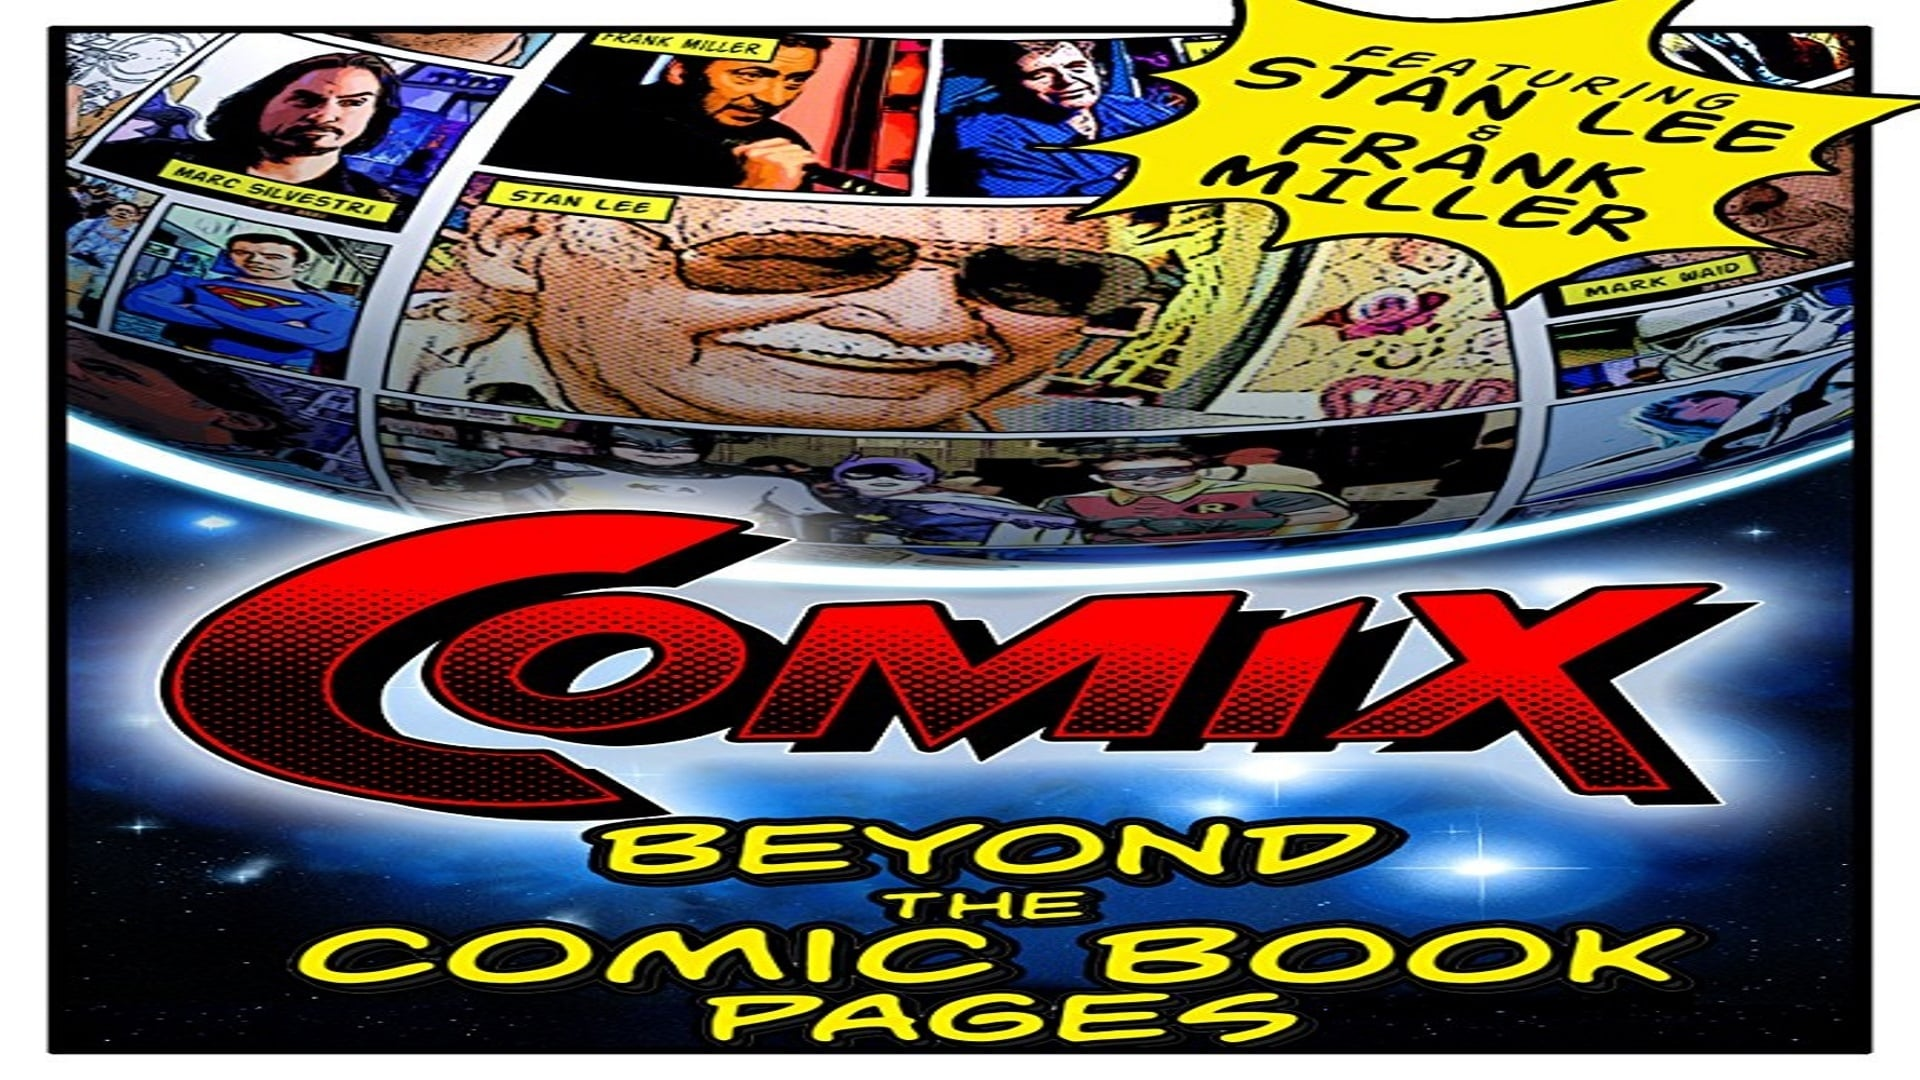 COMIX: Beyond the Comic Book Pages (2015)